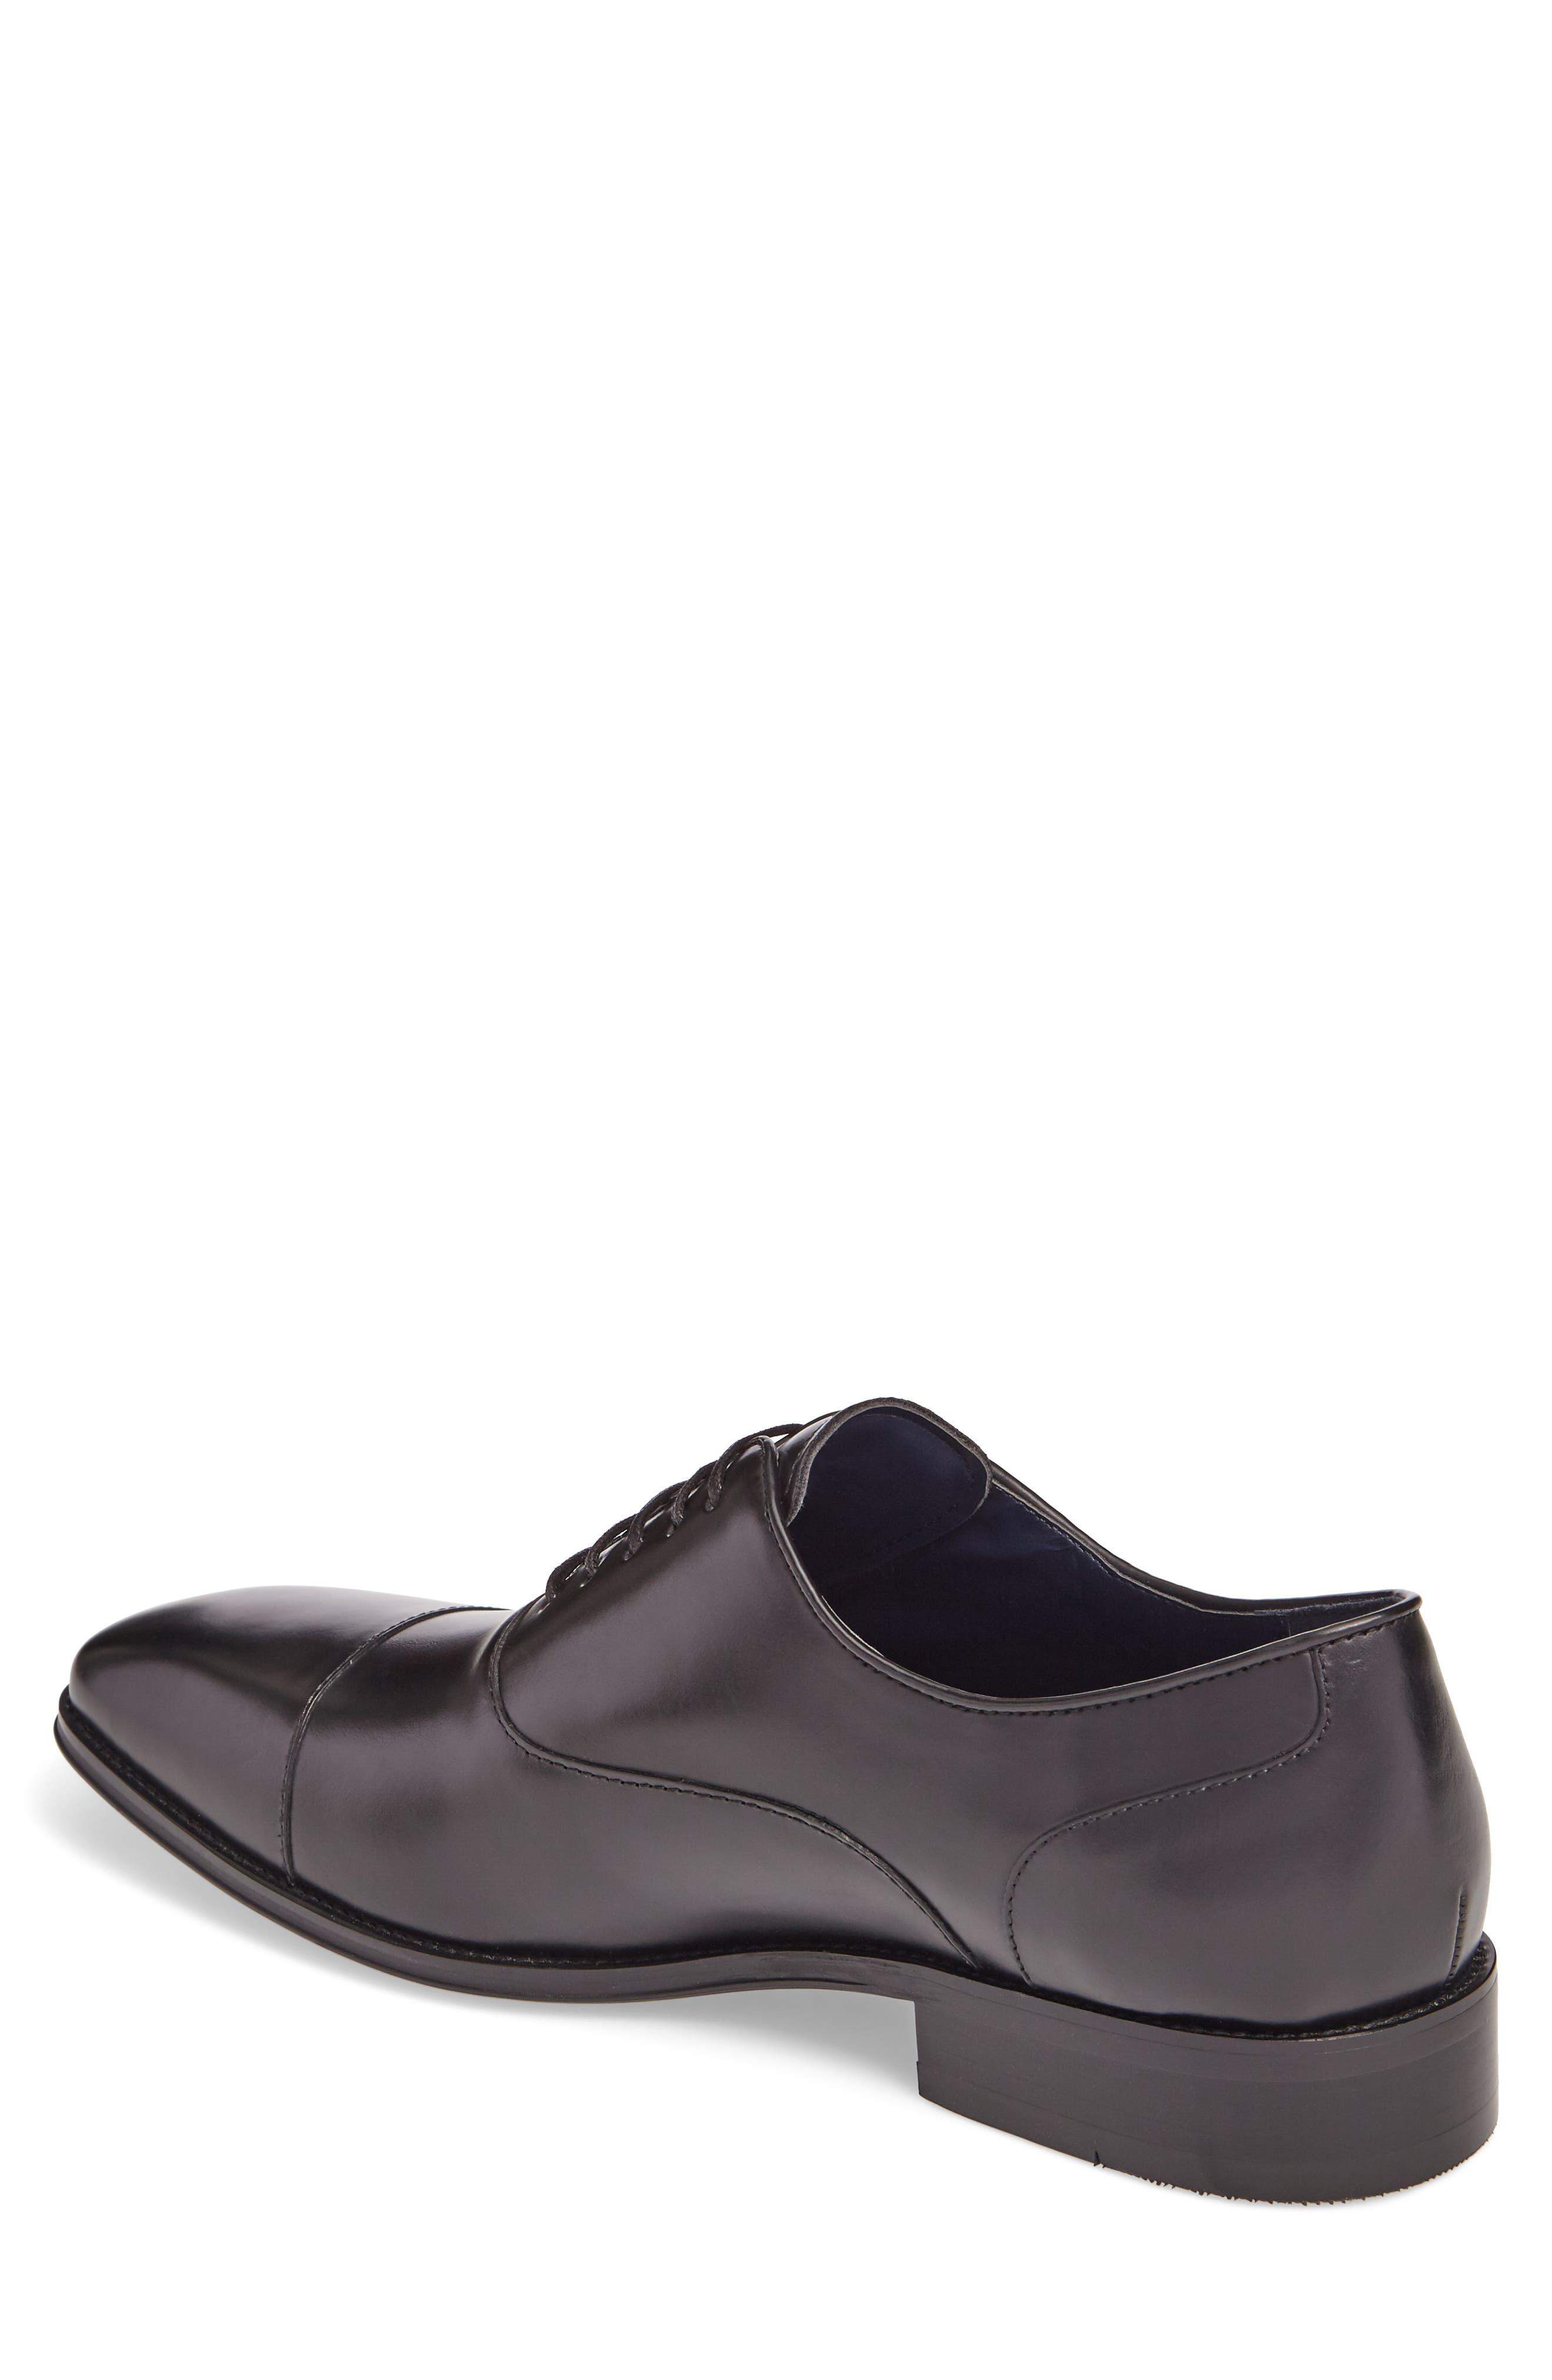 Alternate Image 2  - Kenneth Cole Reaction Cap Toe Oxford (Men)